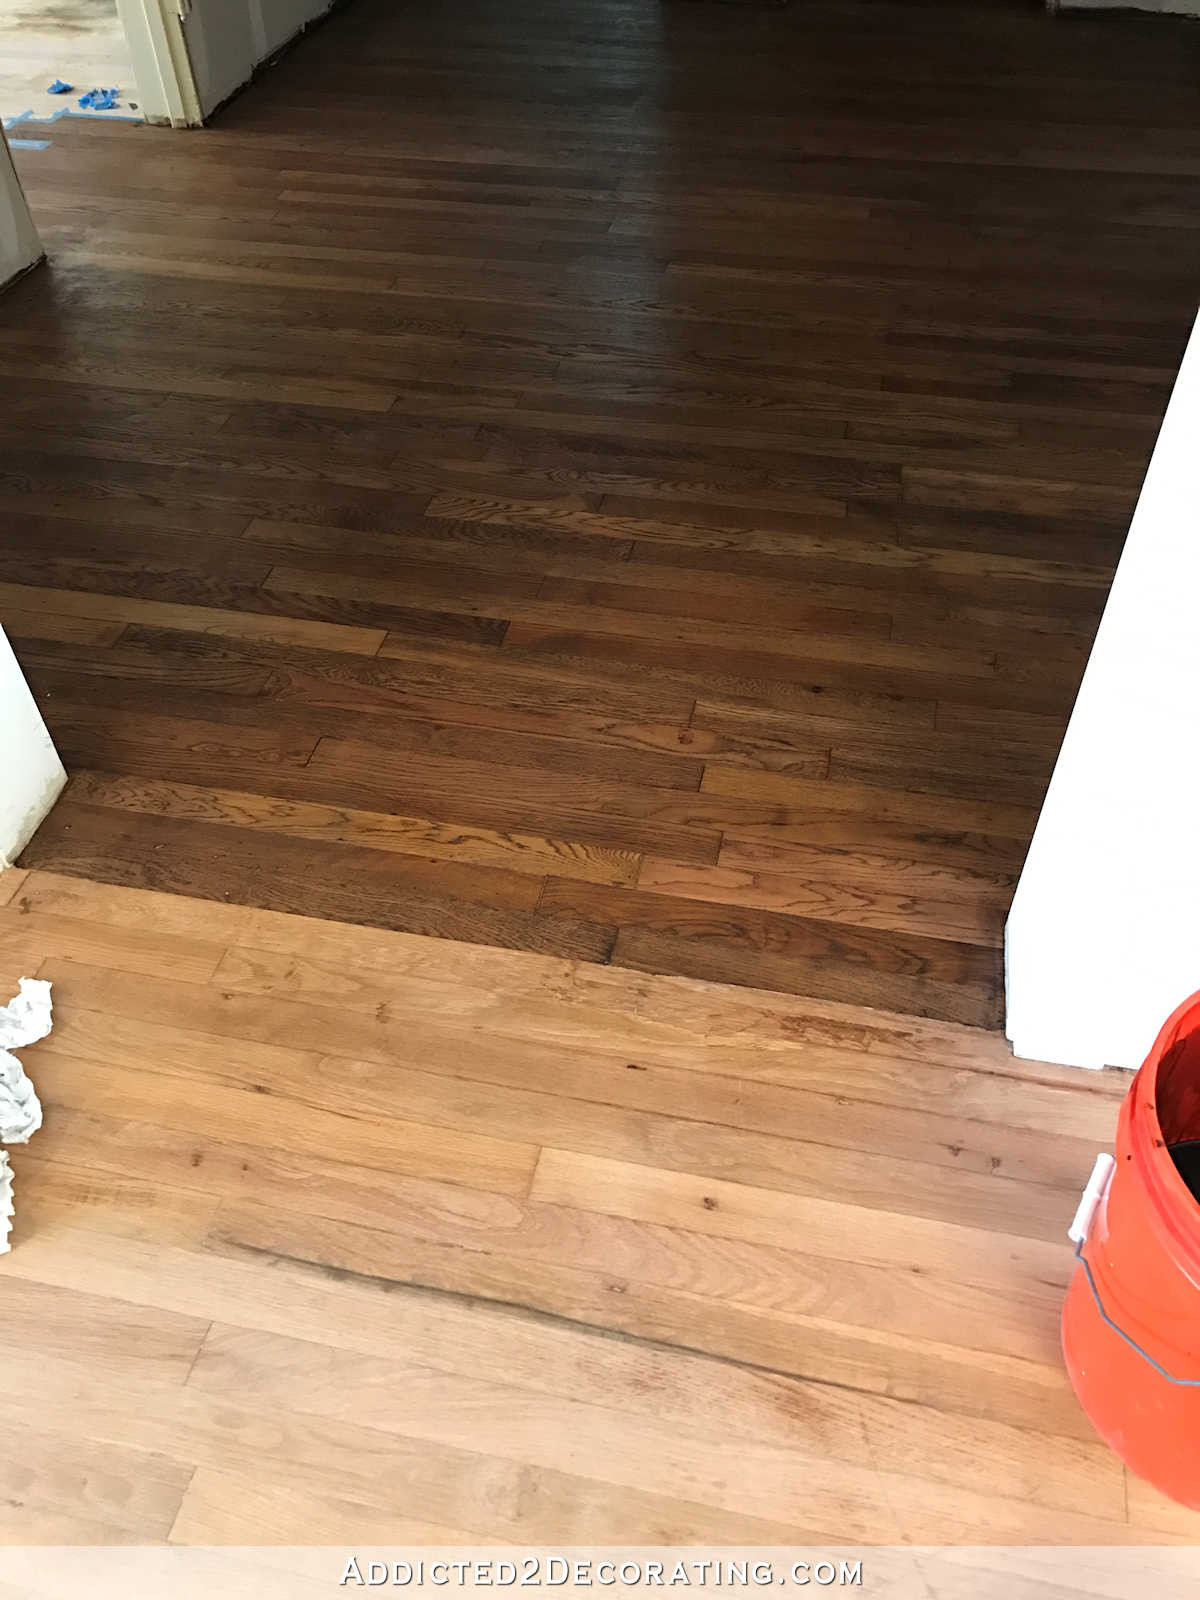 hardwood floor color trends 2018 of how to get paint off of hardwood floors floor pertaining to how to get paint off of hardwood floors adventures in staining my red oak hardwood floors